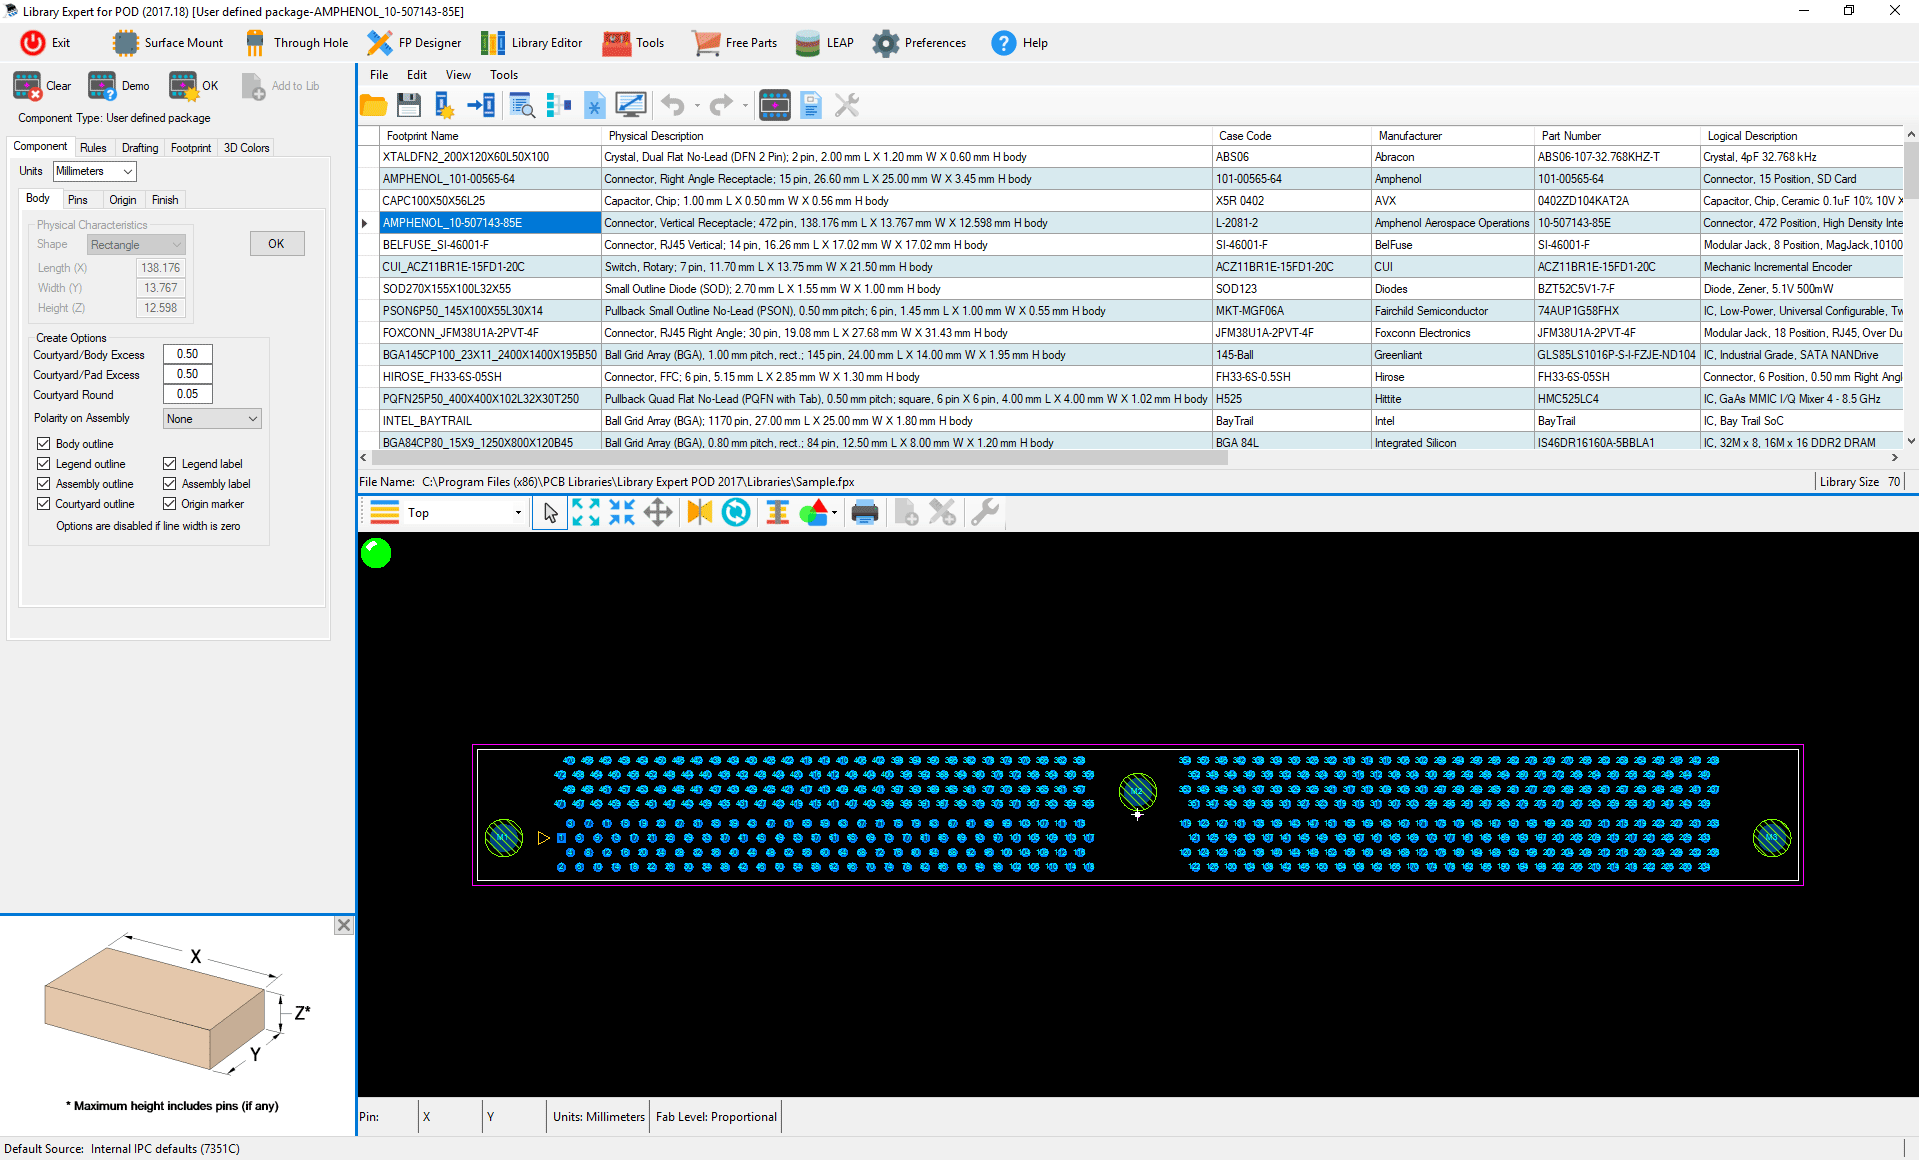 ipc standard pcb library expert POD Builder pod part example 3